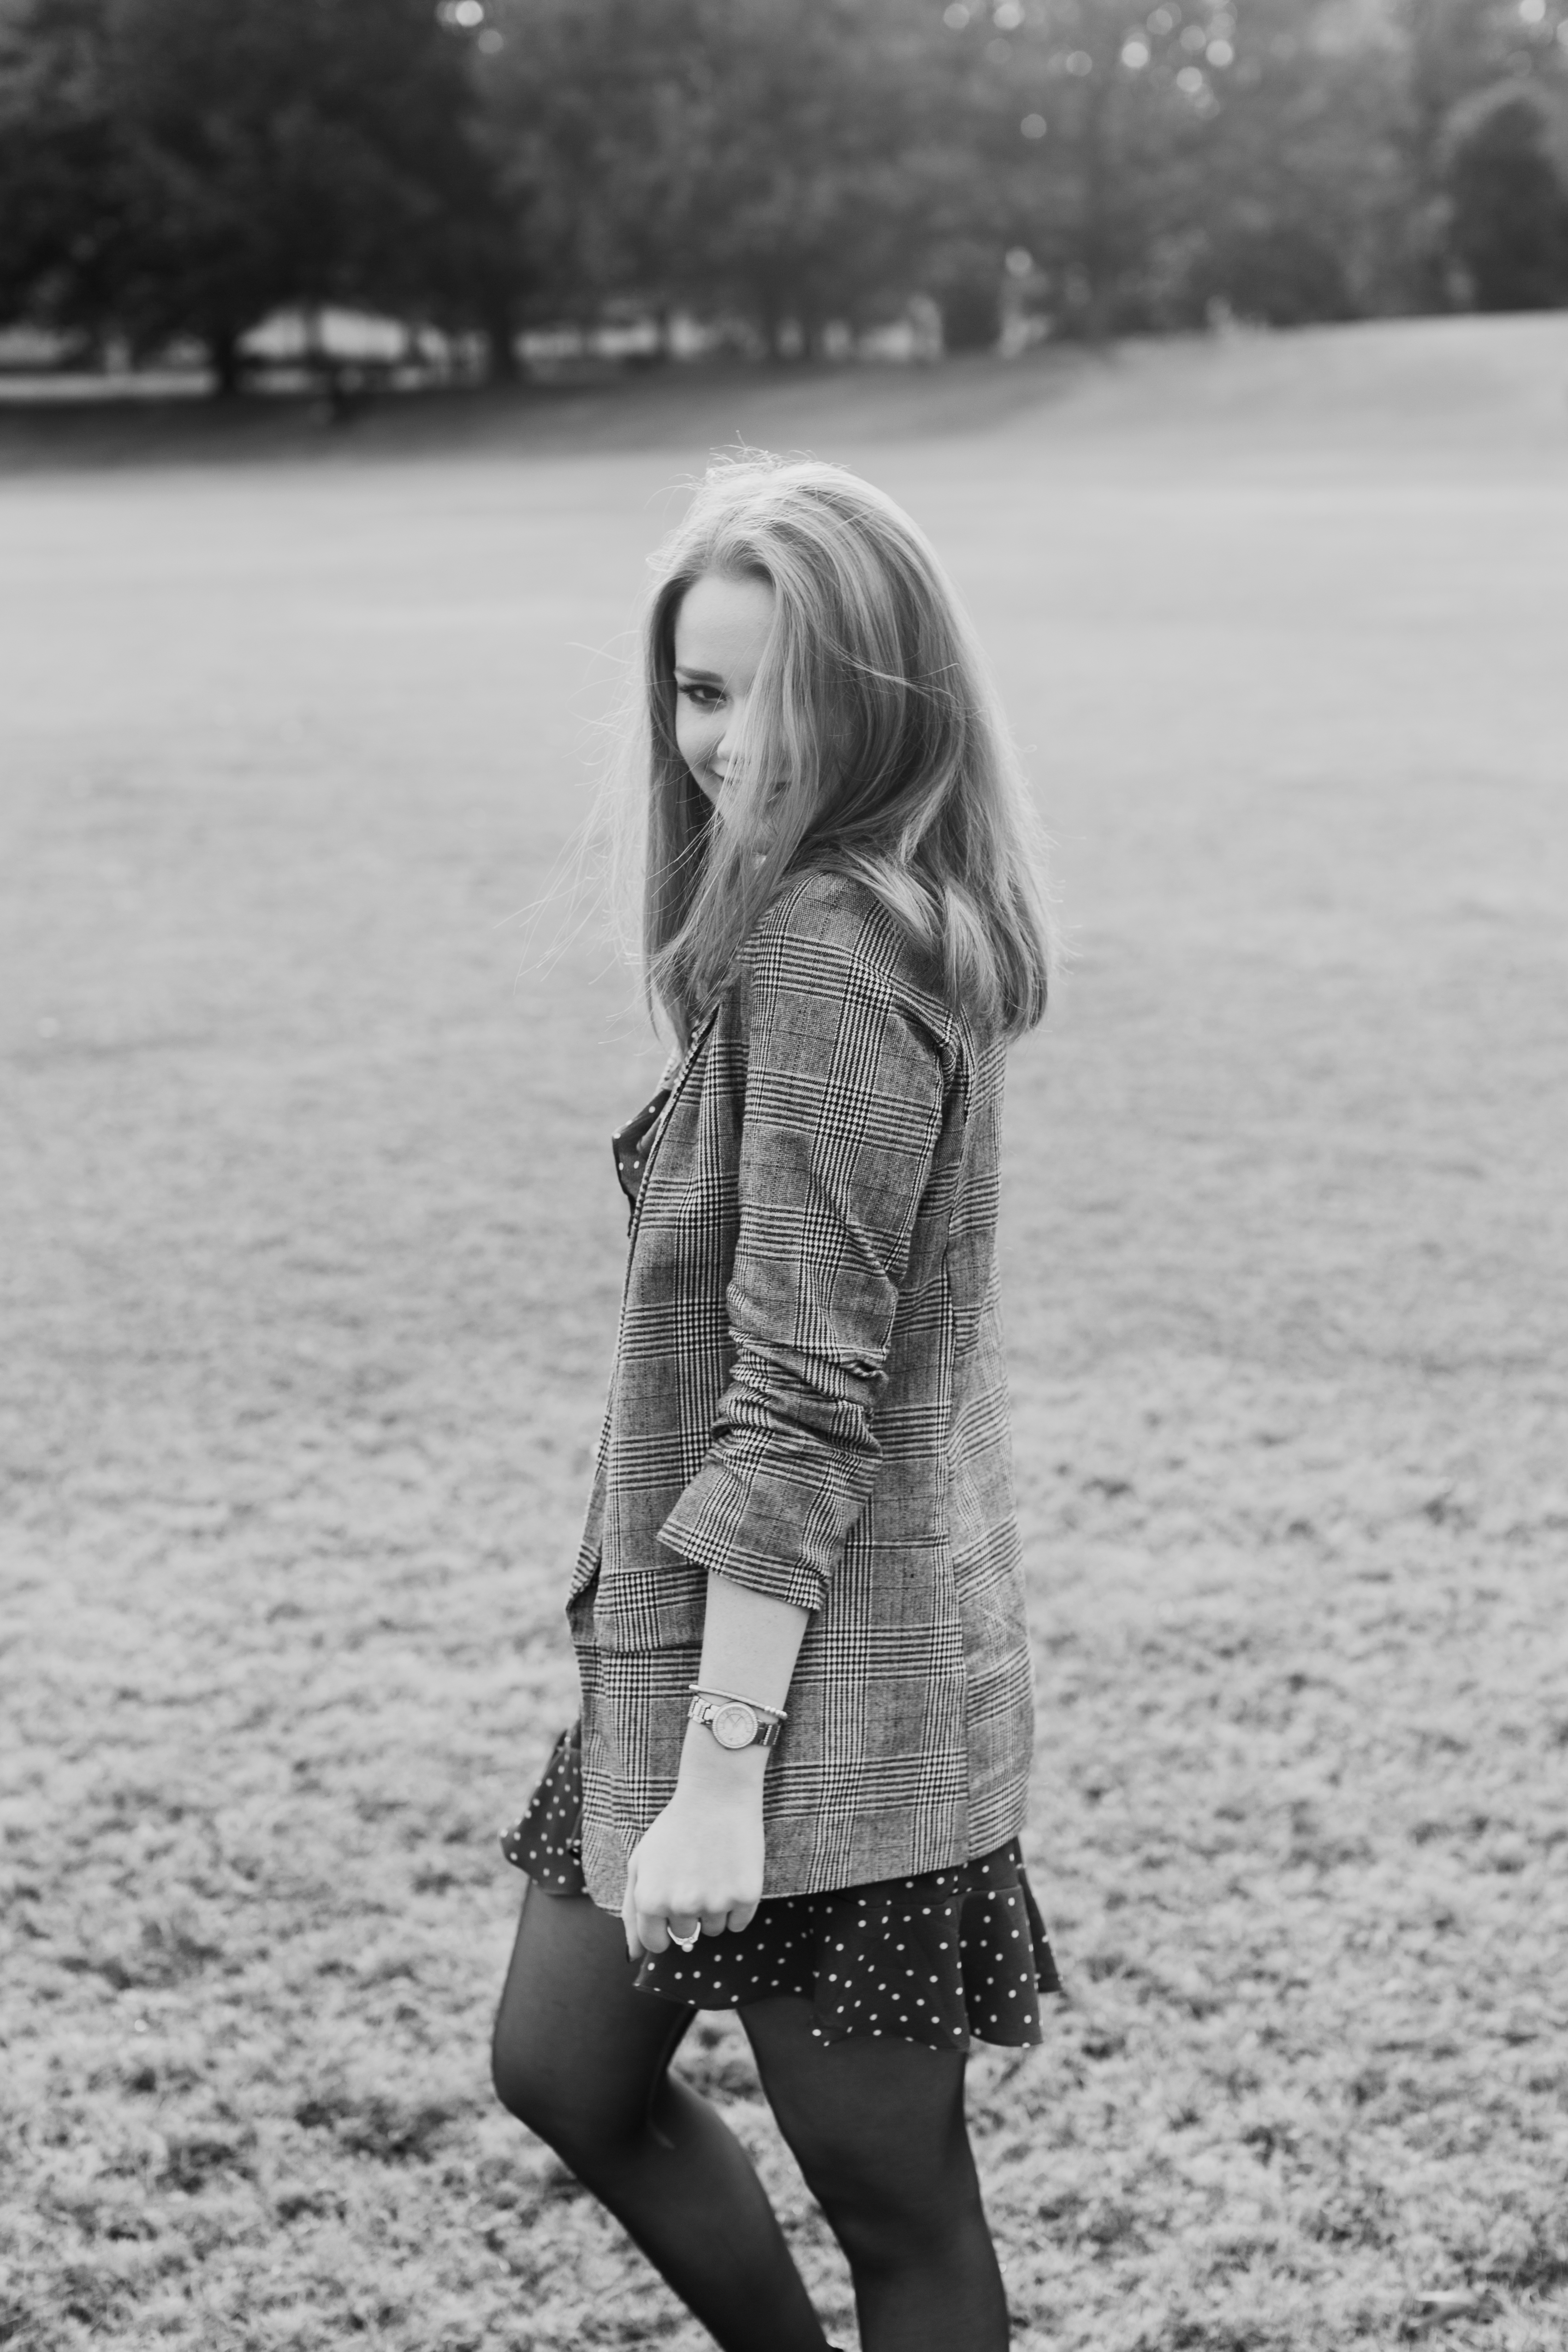 Larla H. Piedmont Park open field fall colors golden hour magazine lifestyle fashion candid pose red hair atlanta black and white